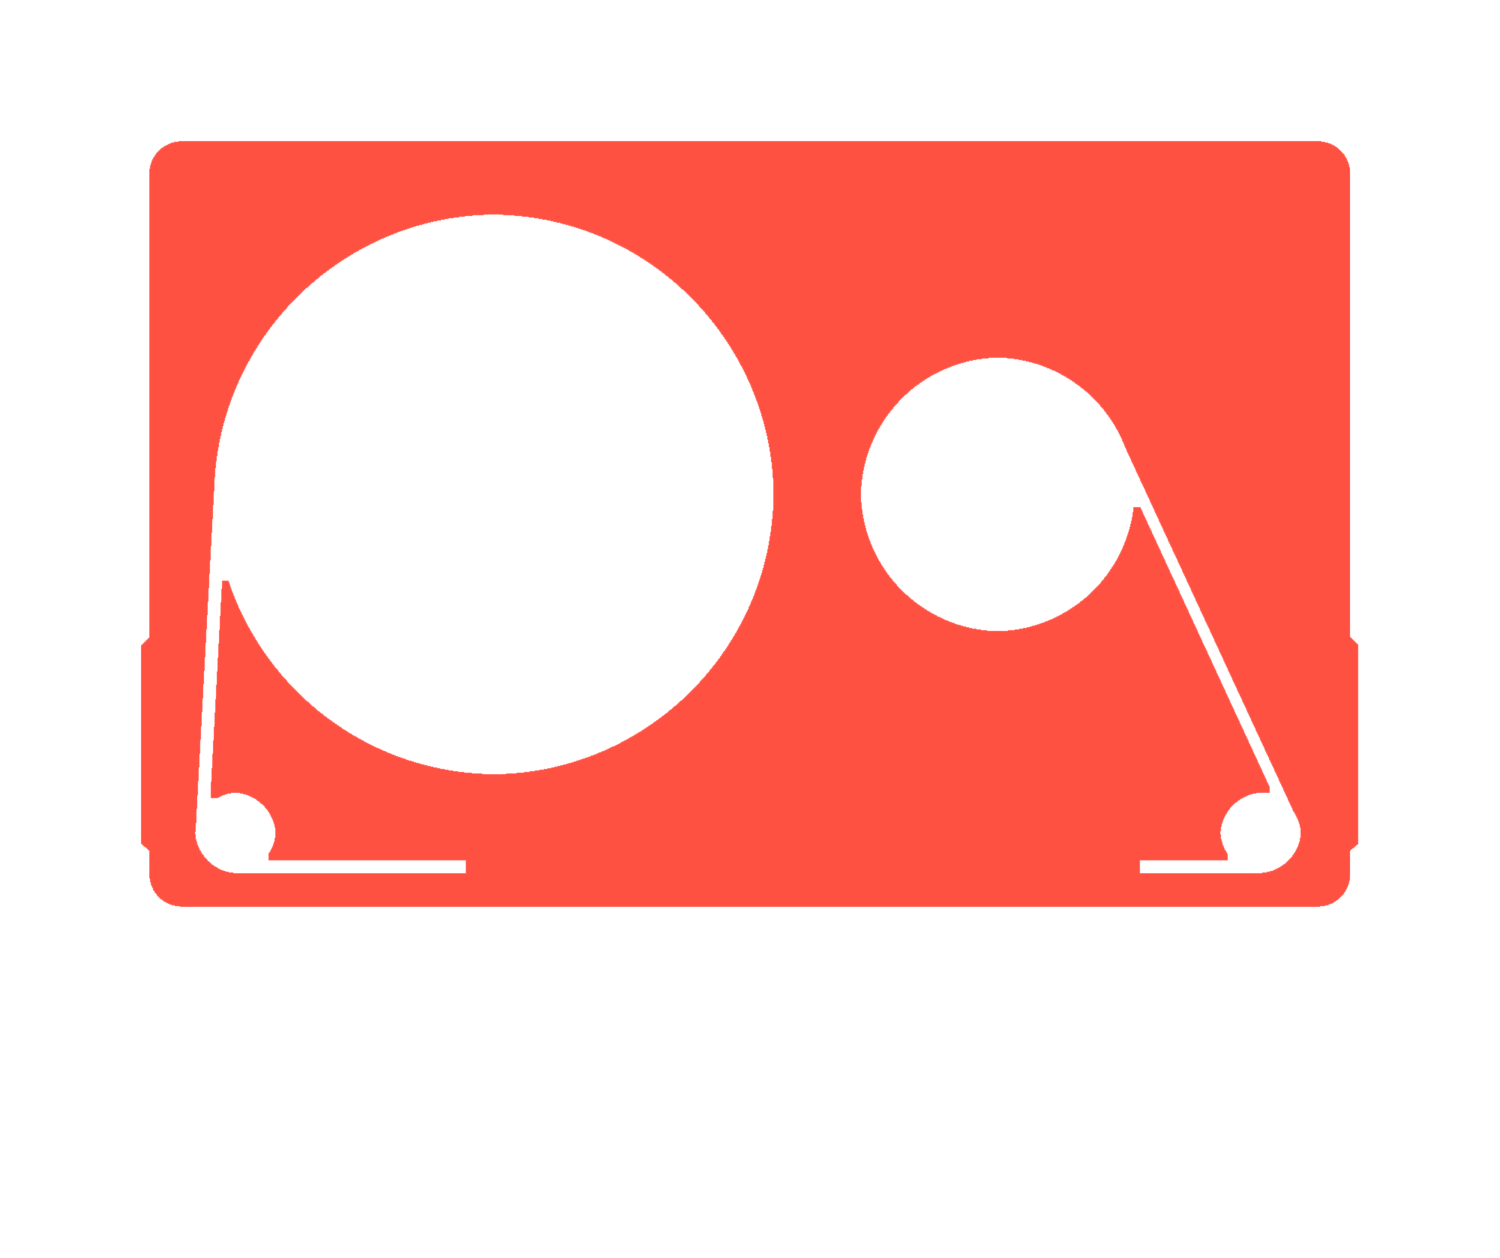 Last Aid Kit Records